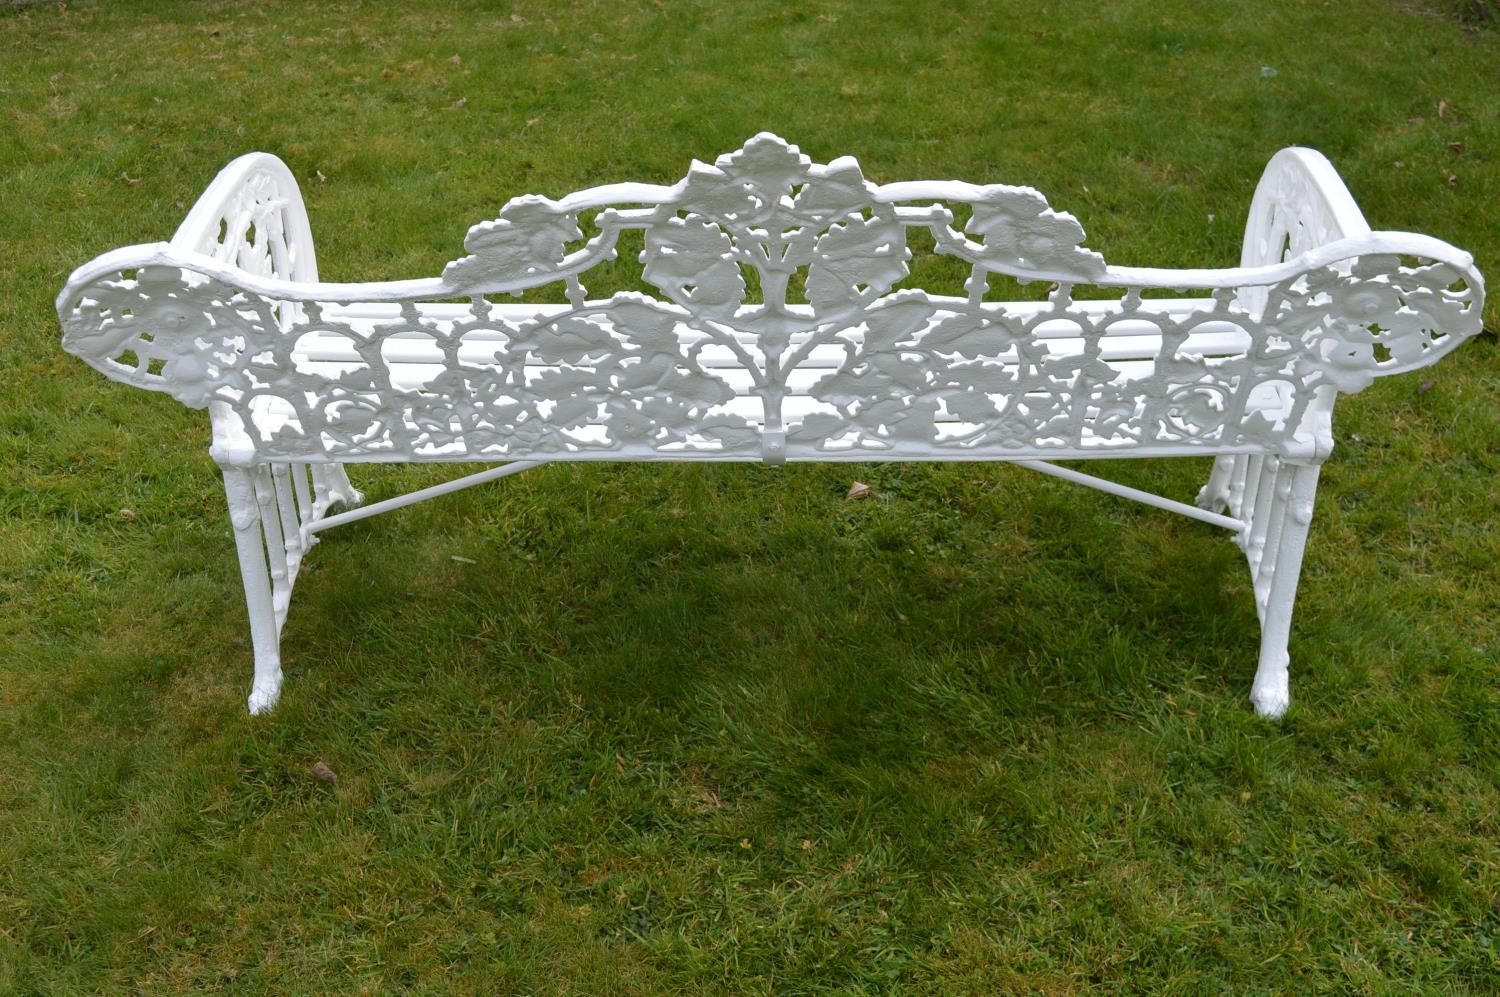 Cast iron garden bench. - Image 3 of 3